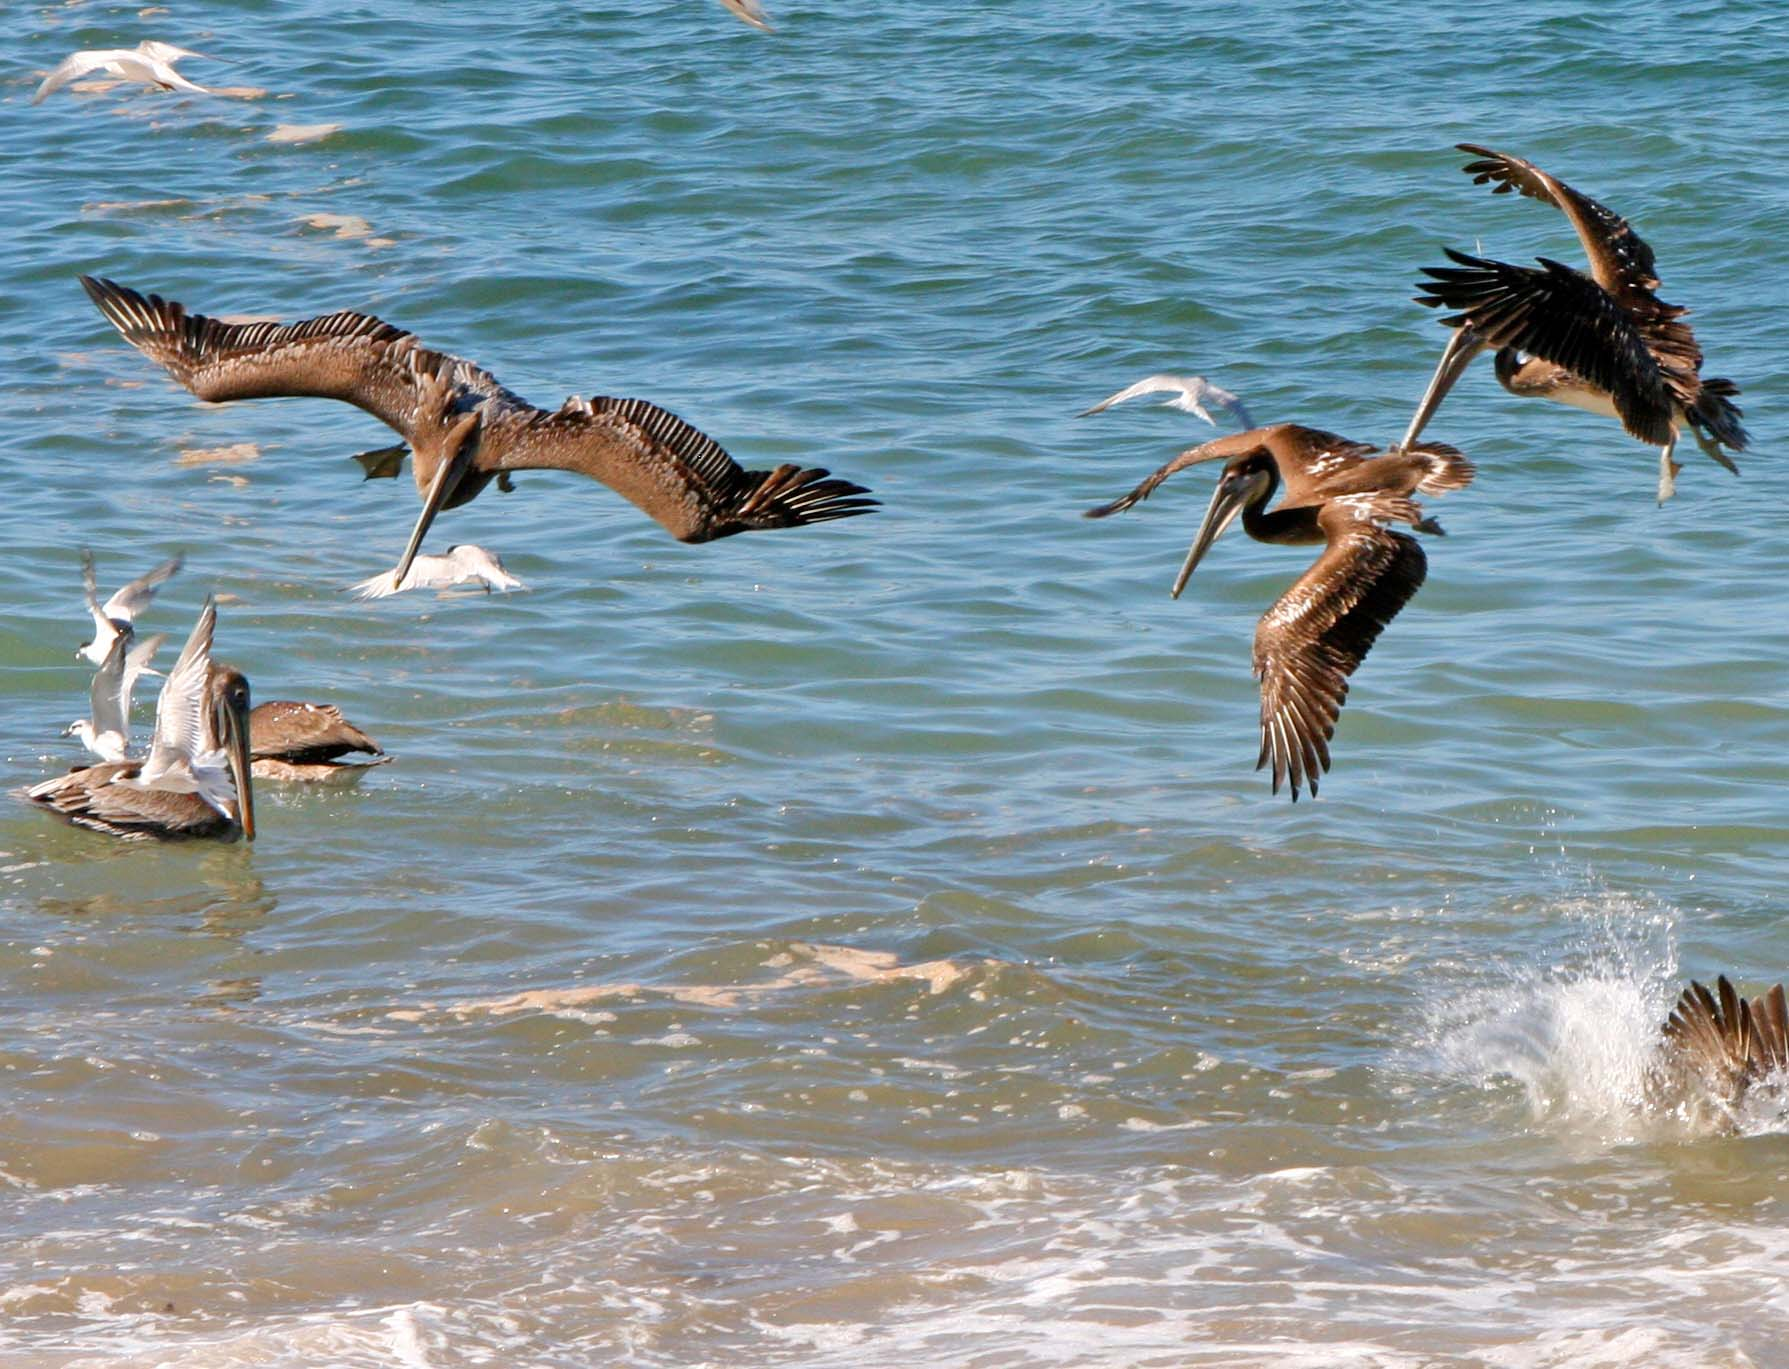 Pelicans prepare to dive in Puerto Vallarta, Mexico.